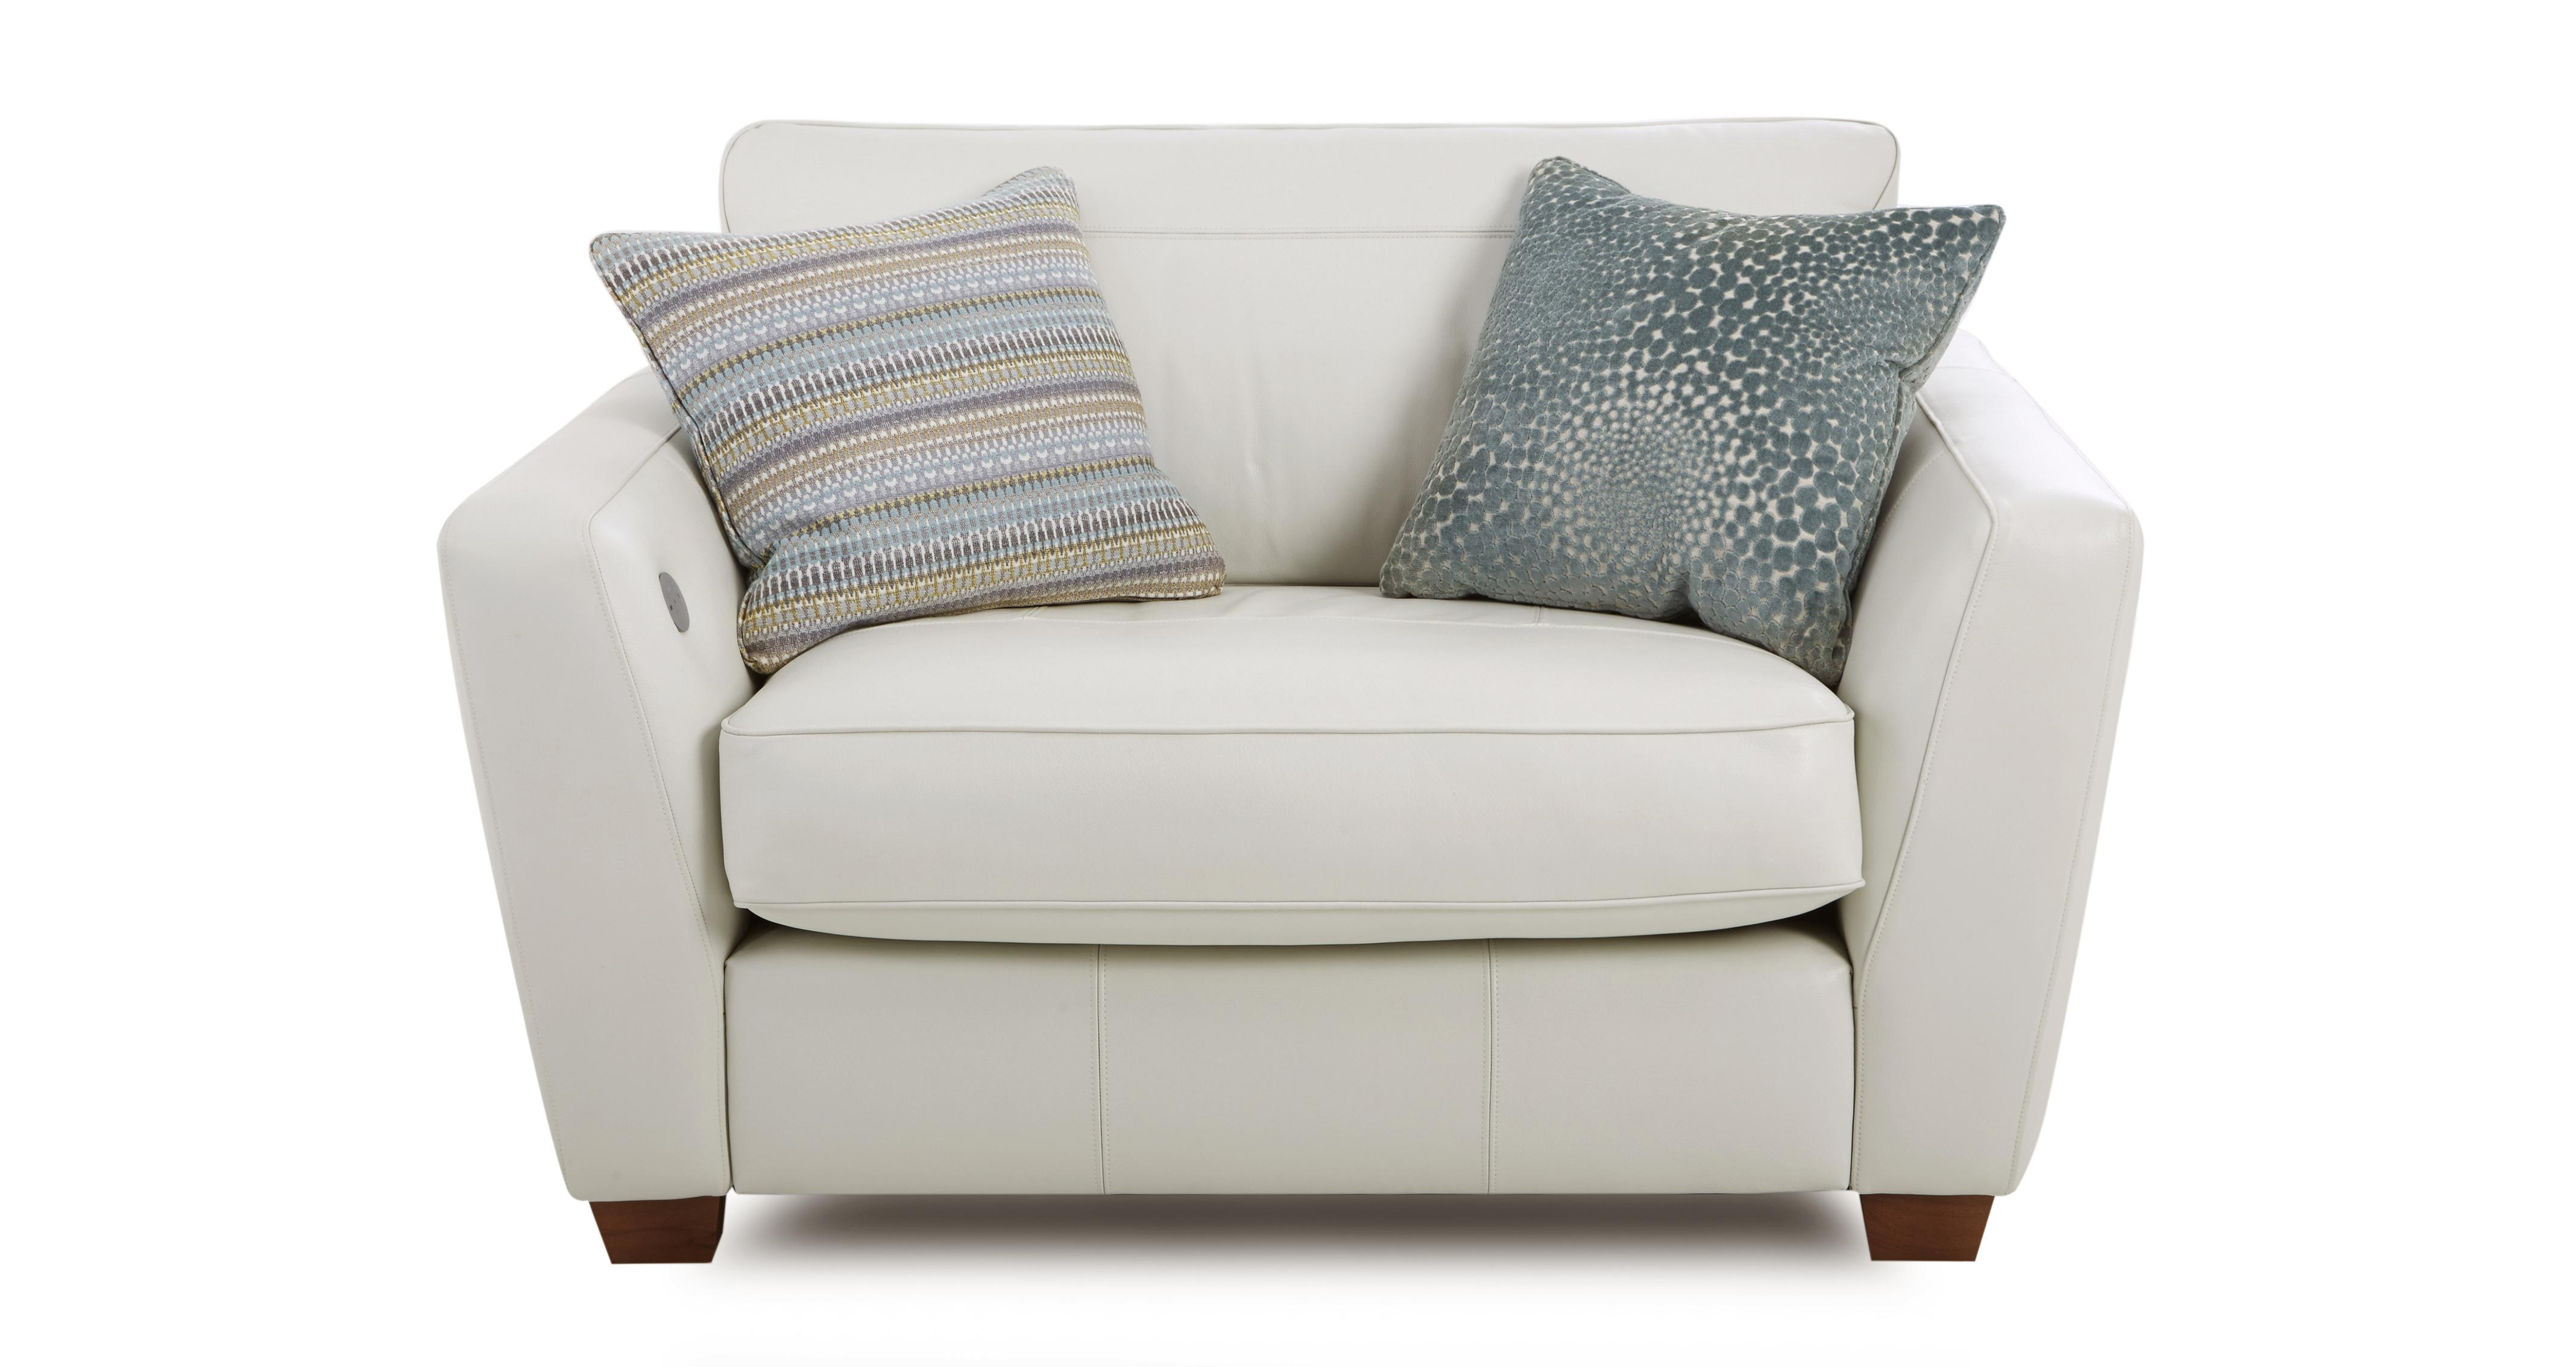 cuddler by alloy ashley piece with chamberly item couch products left signature sectional design sofa modern